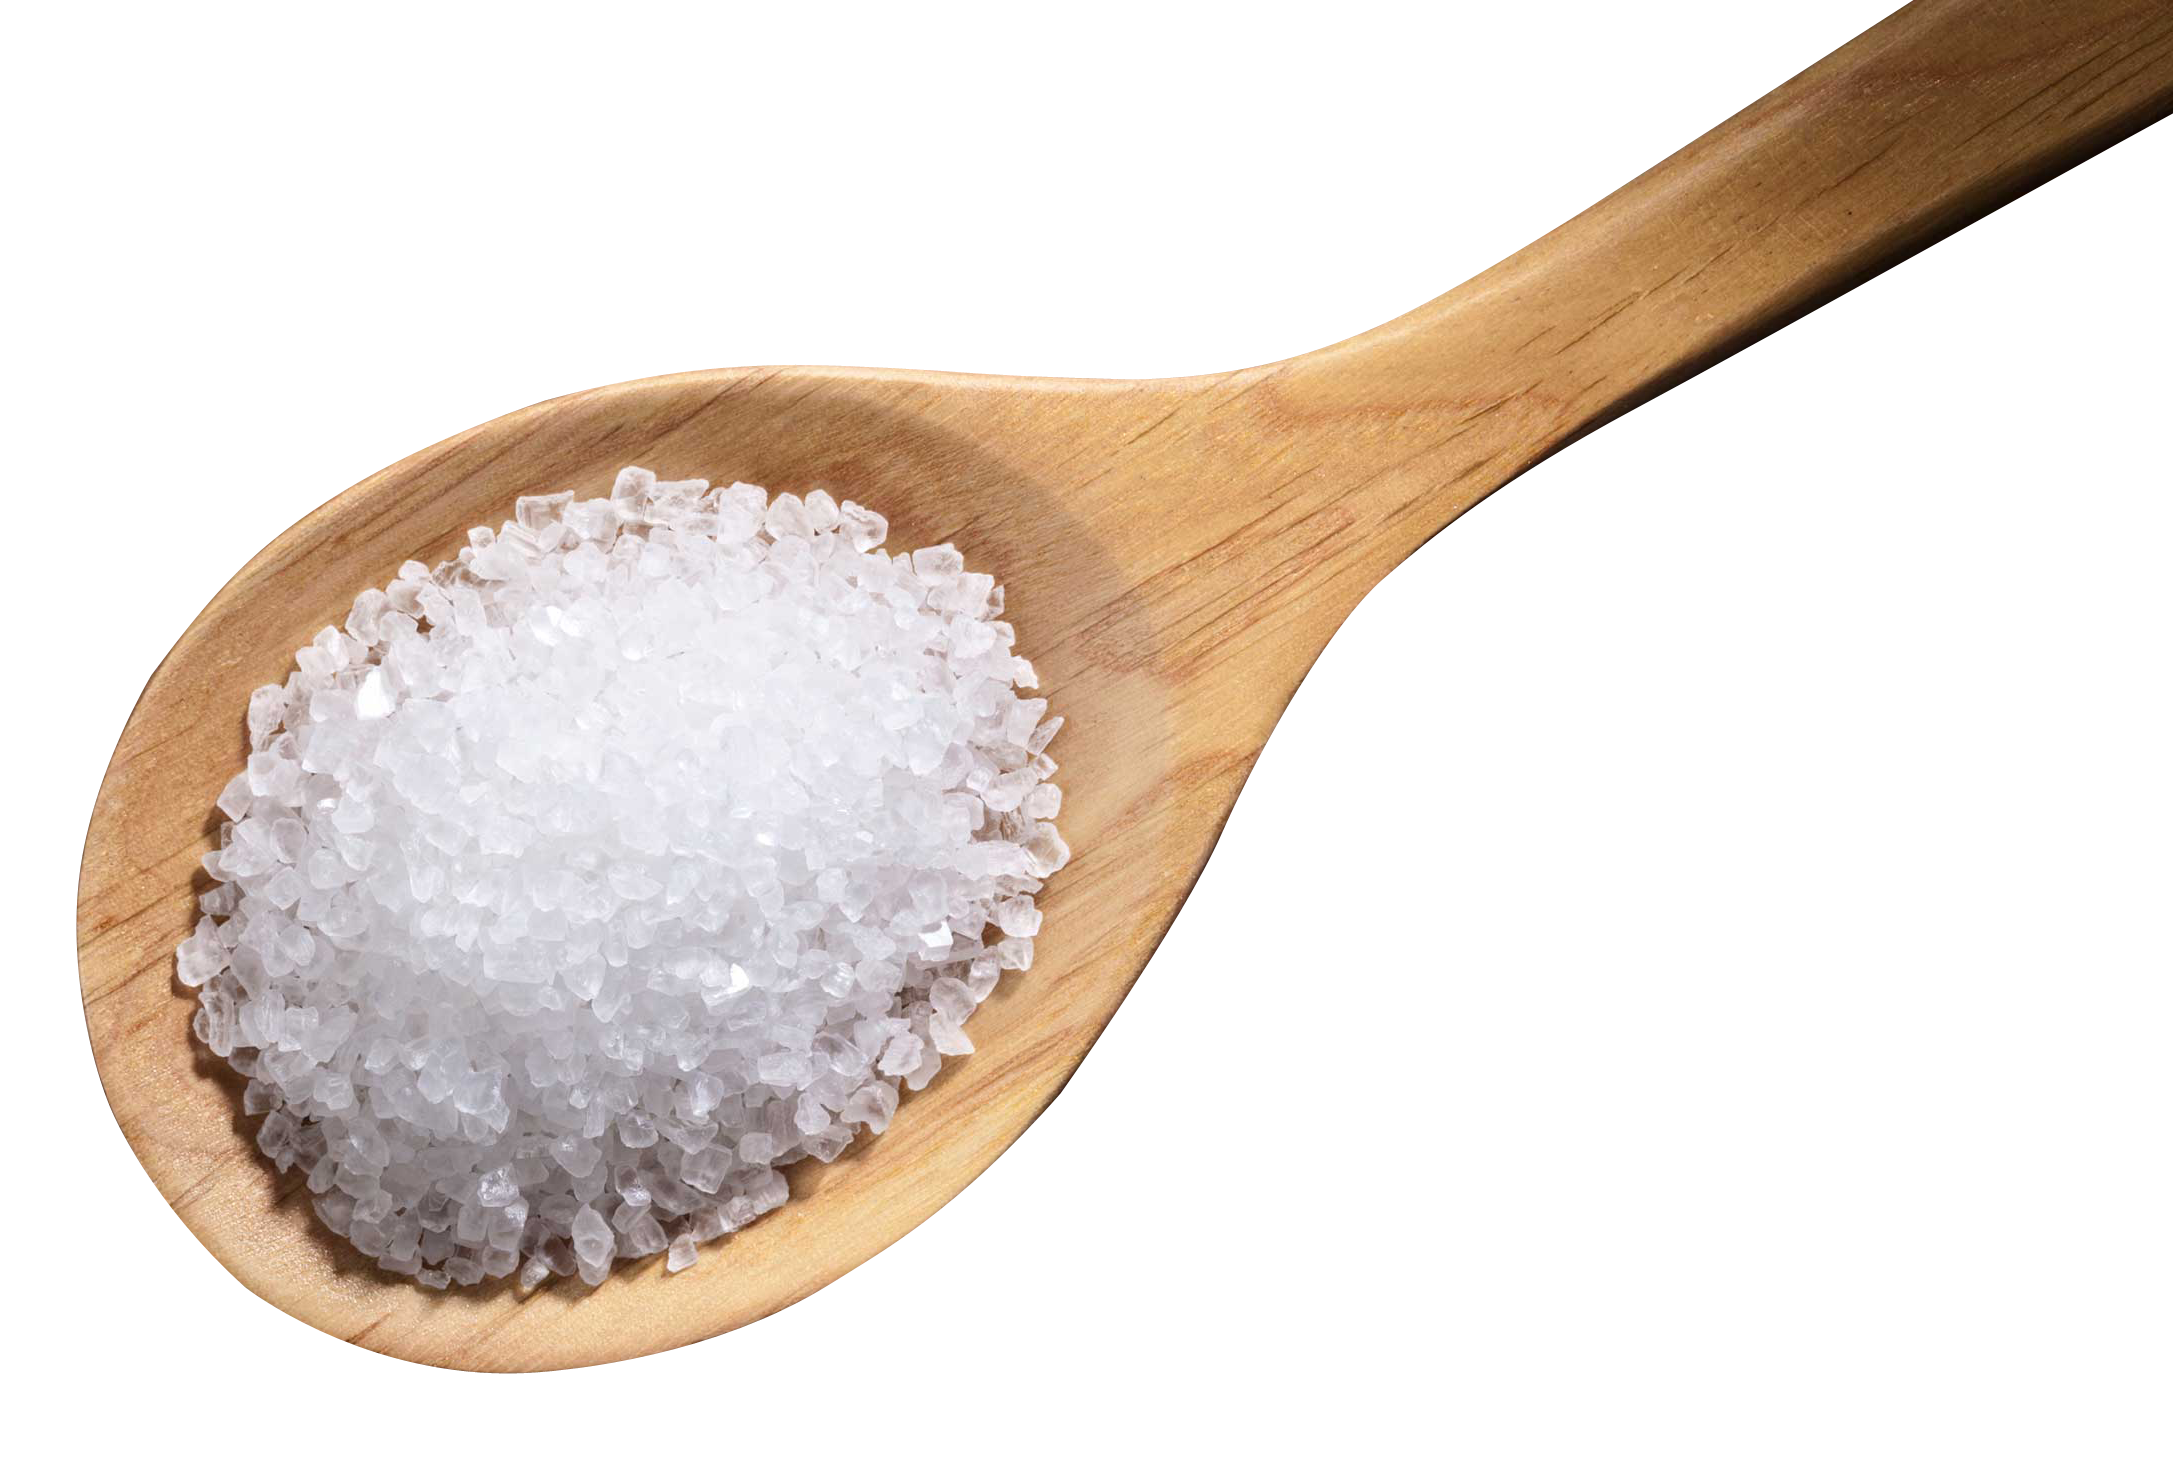 wodden spoon with sugar png image purepng #34694